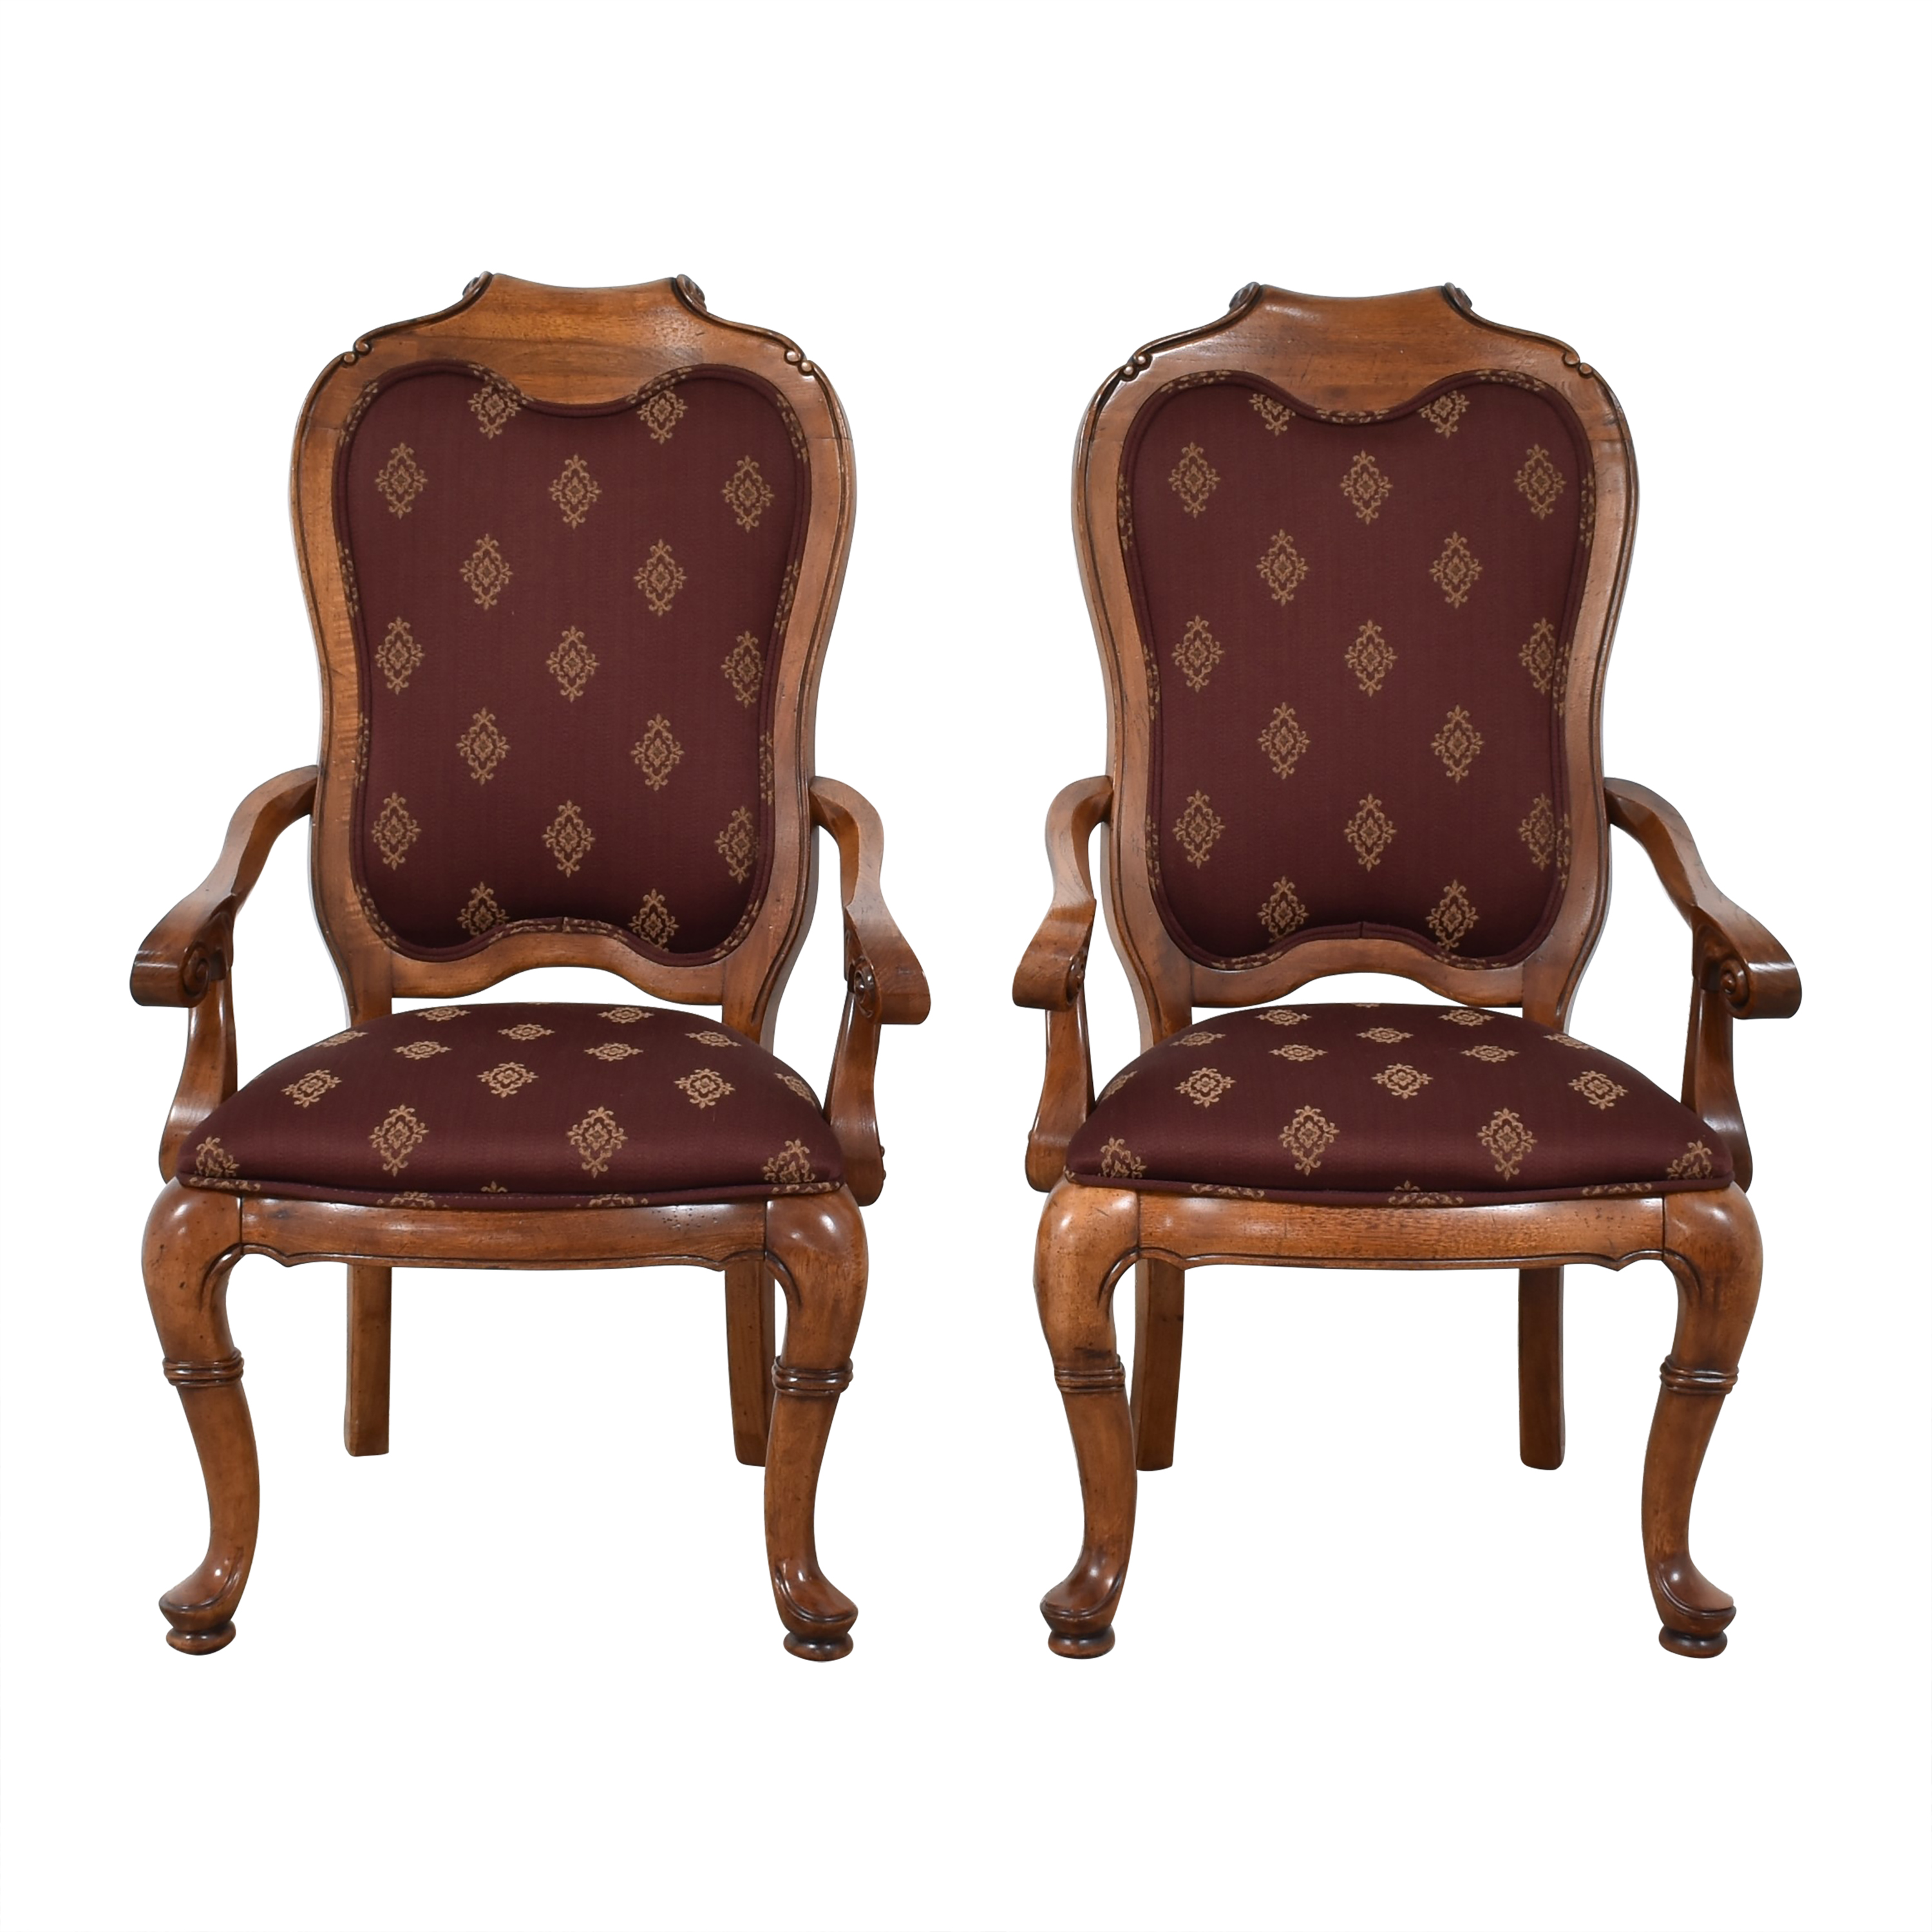 Thomasville Upholstered Dining Arm Chairs sale